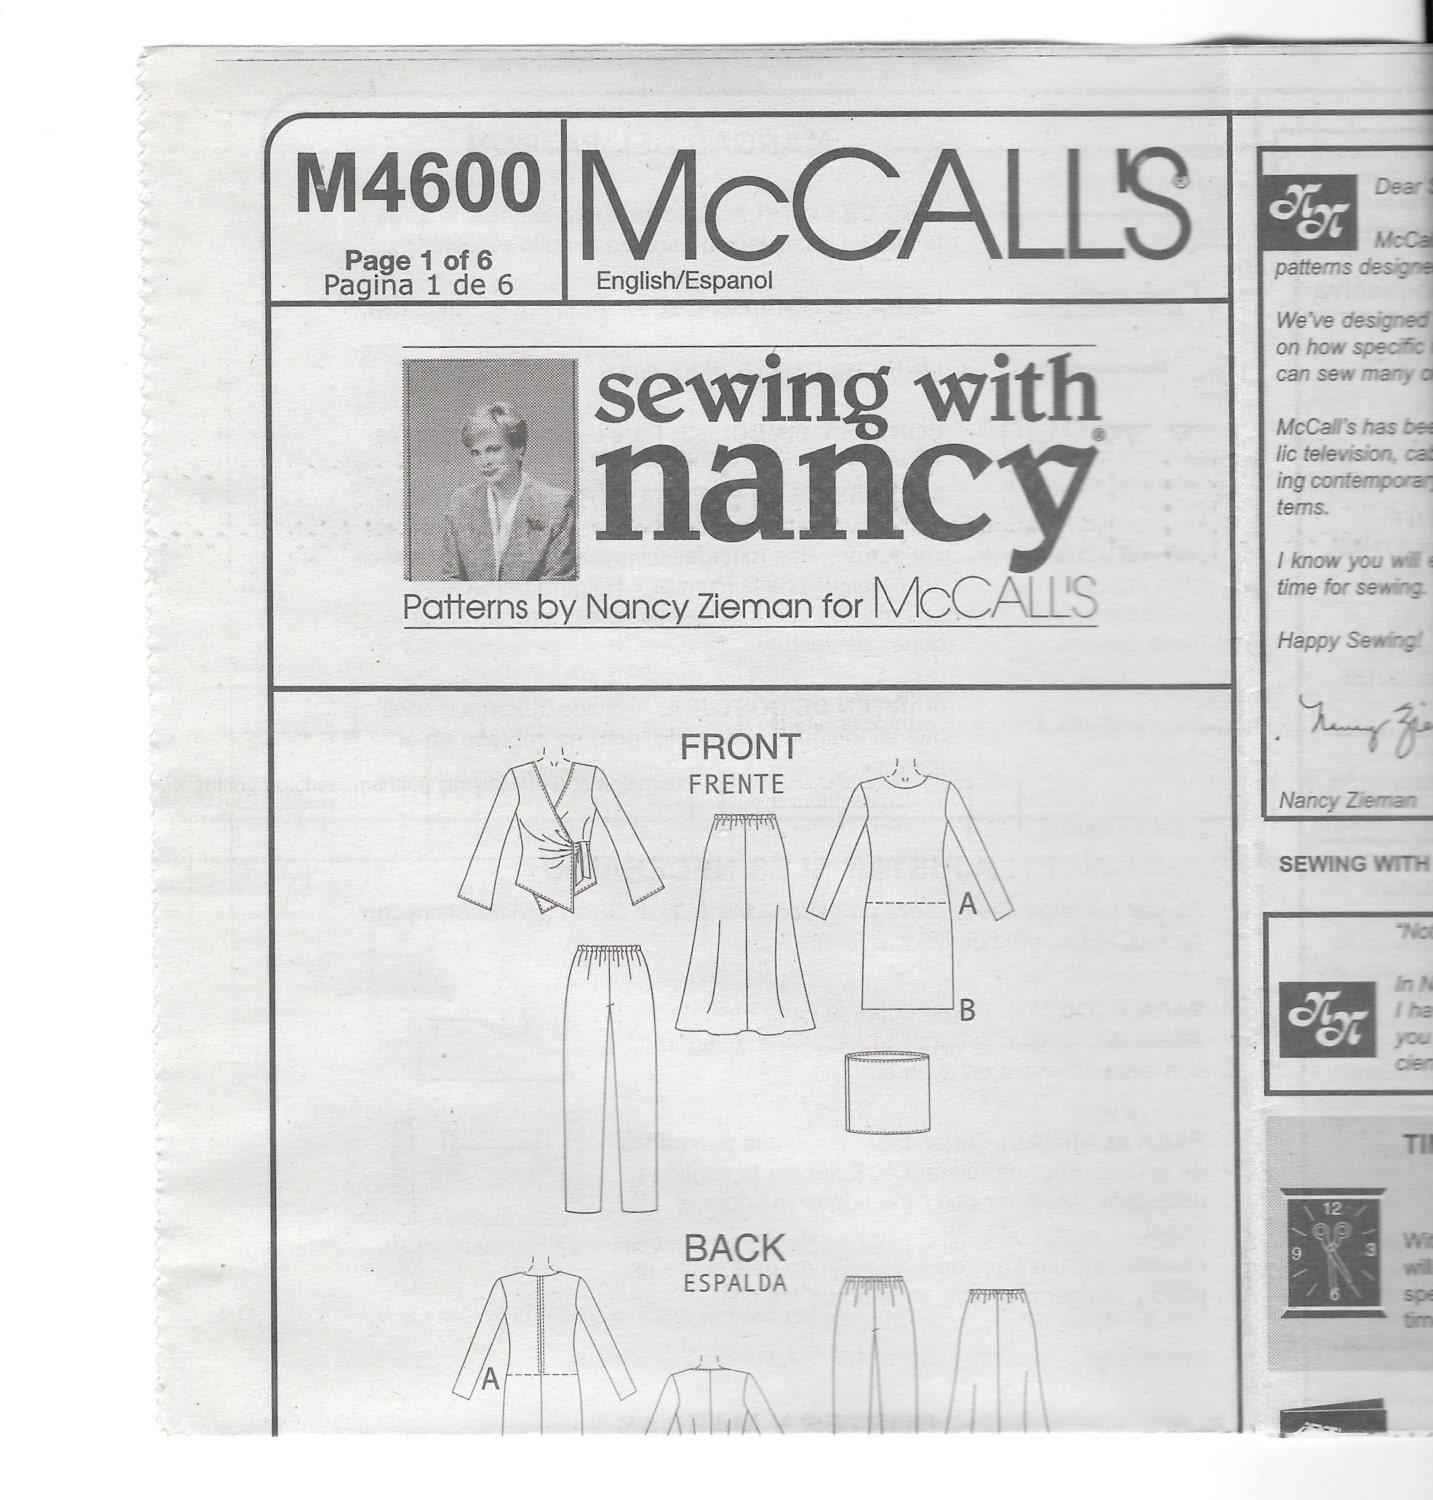 Mccalls m4600 sewing with nancy easy knit wardrobe patterns for 295 shipping jeuxipadfo Image collections